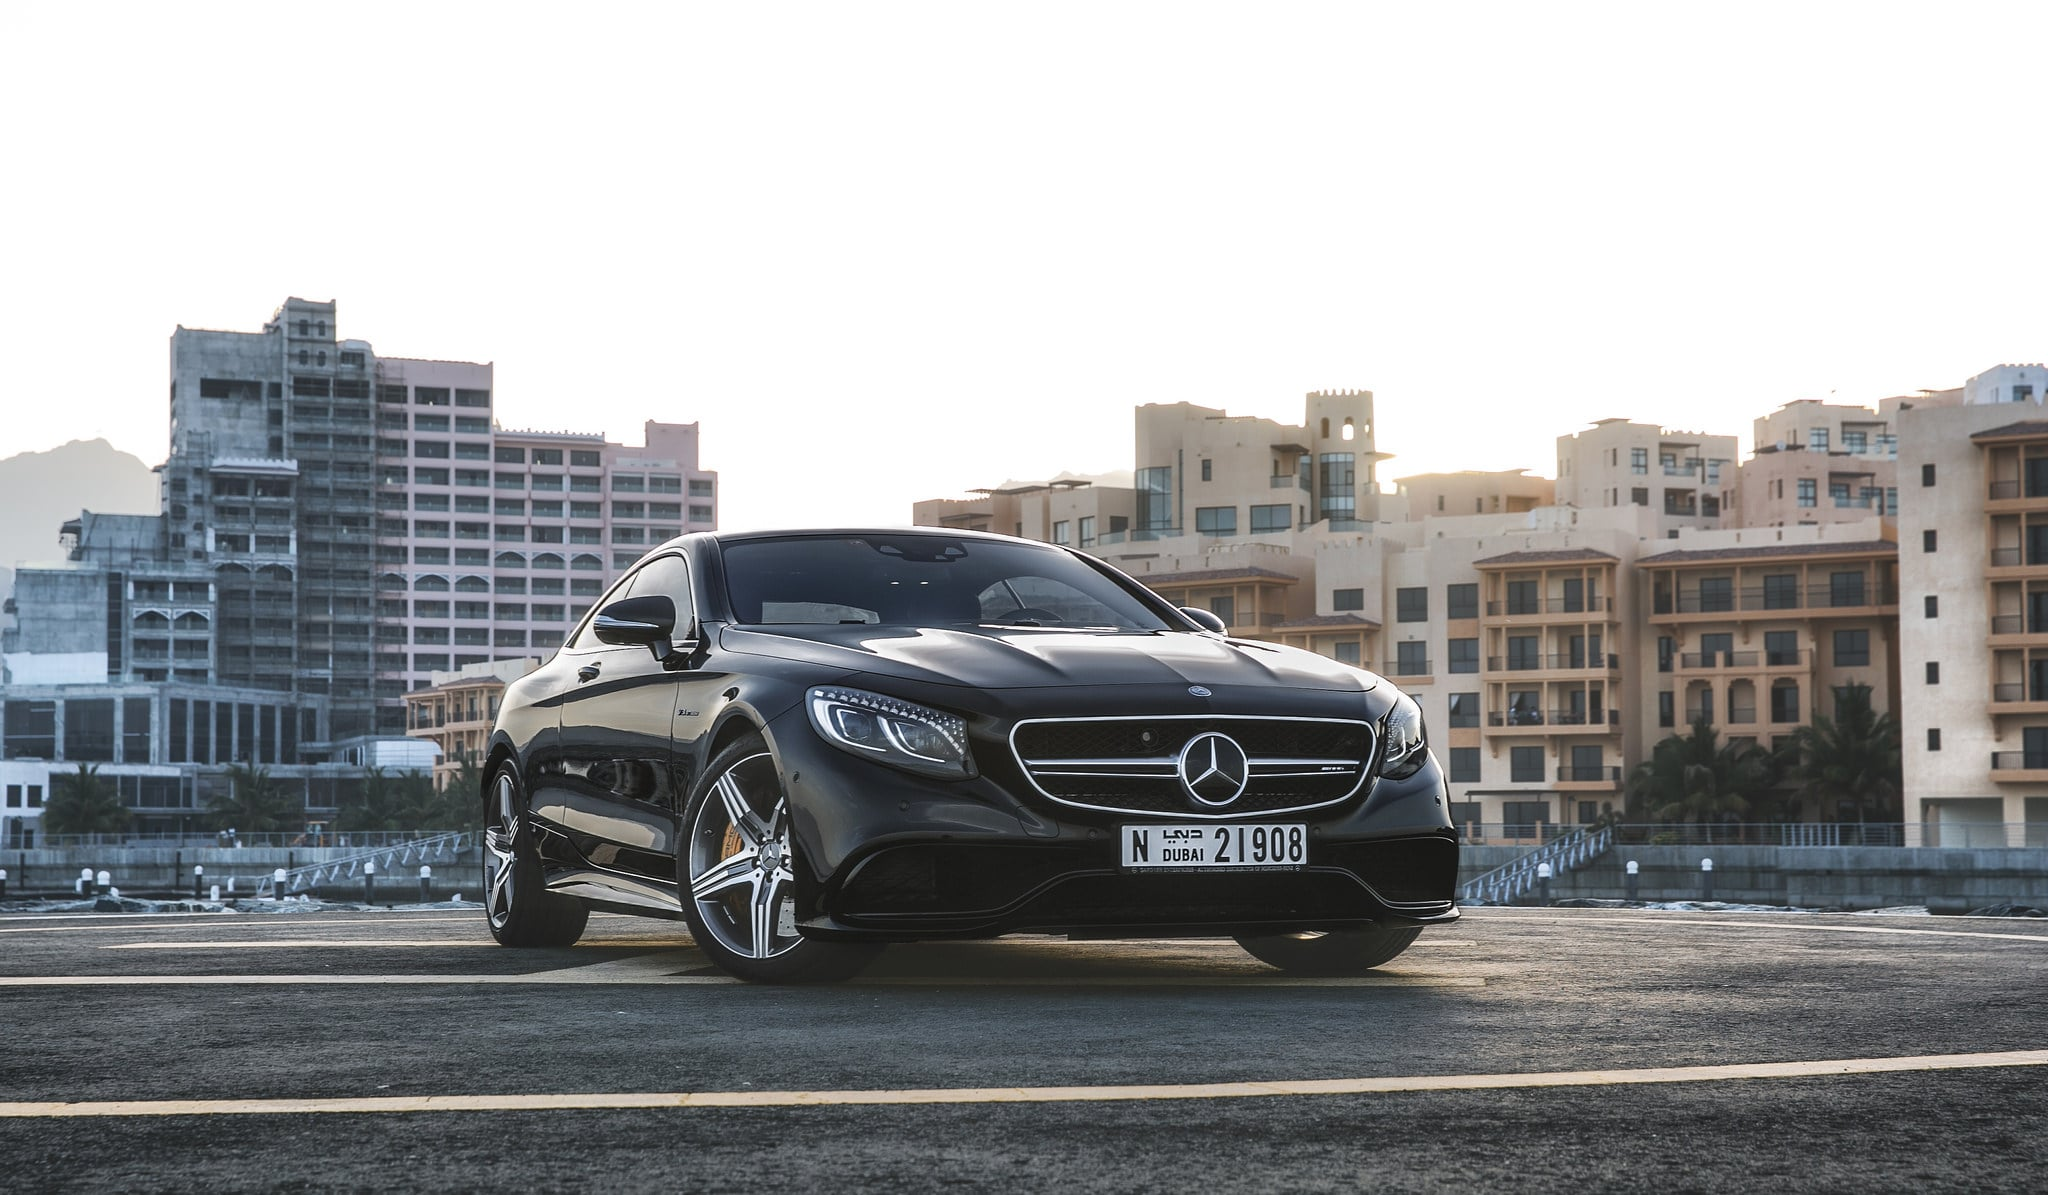 Mercedes AMG S63 Coupe picture